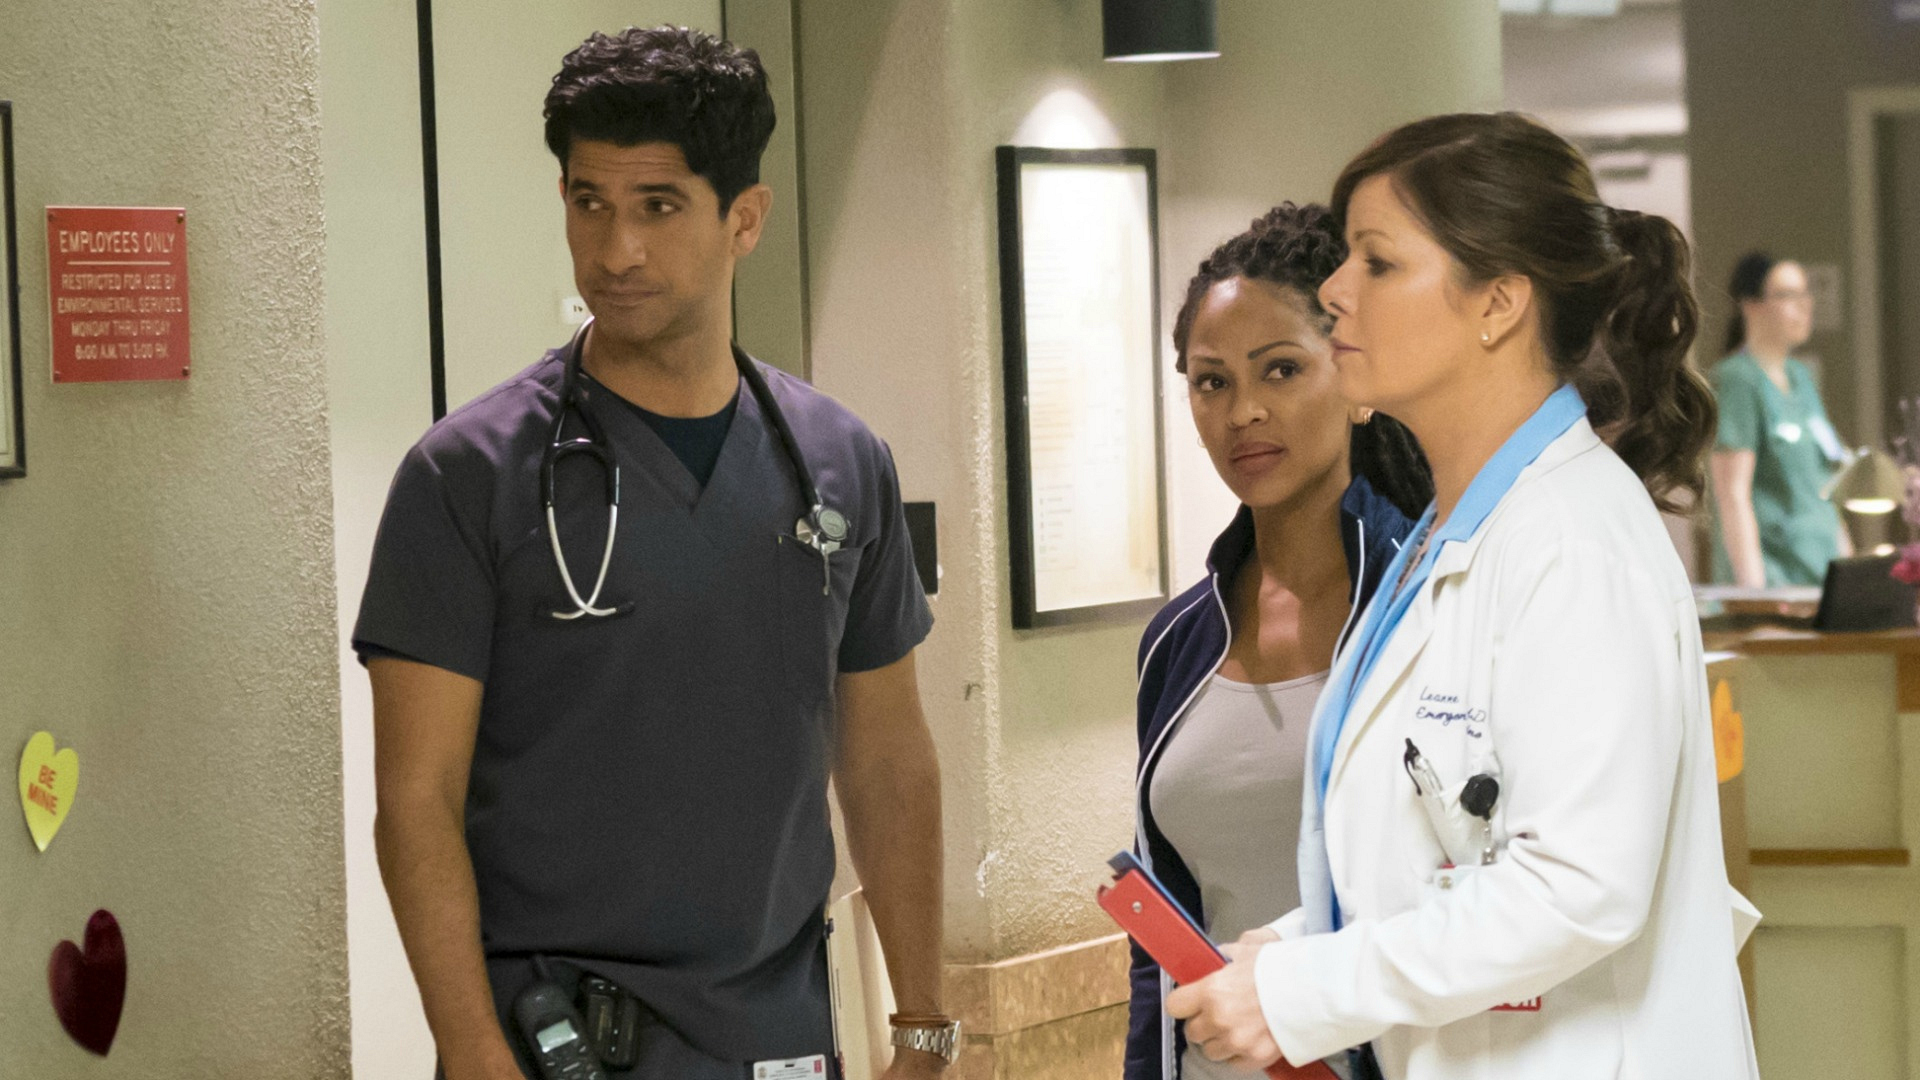 Raza Jaffrey as Dr. Neal Hudson, Meagan Good as Dr. Grace Adams, and Marcia Gay Harden as Dr. Leanne Rorish